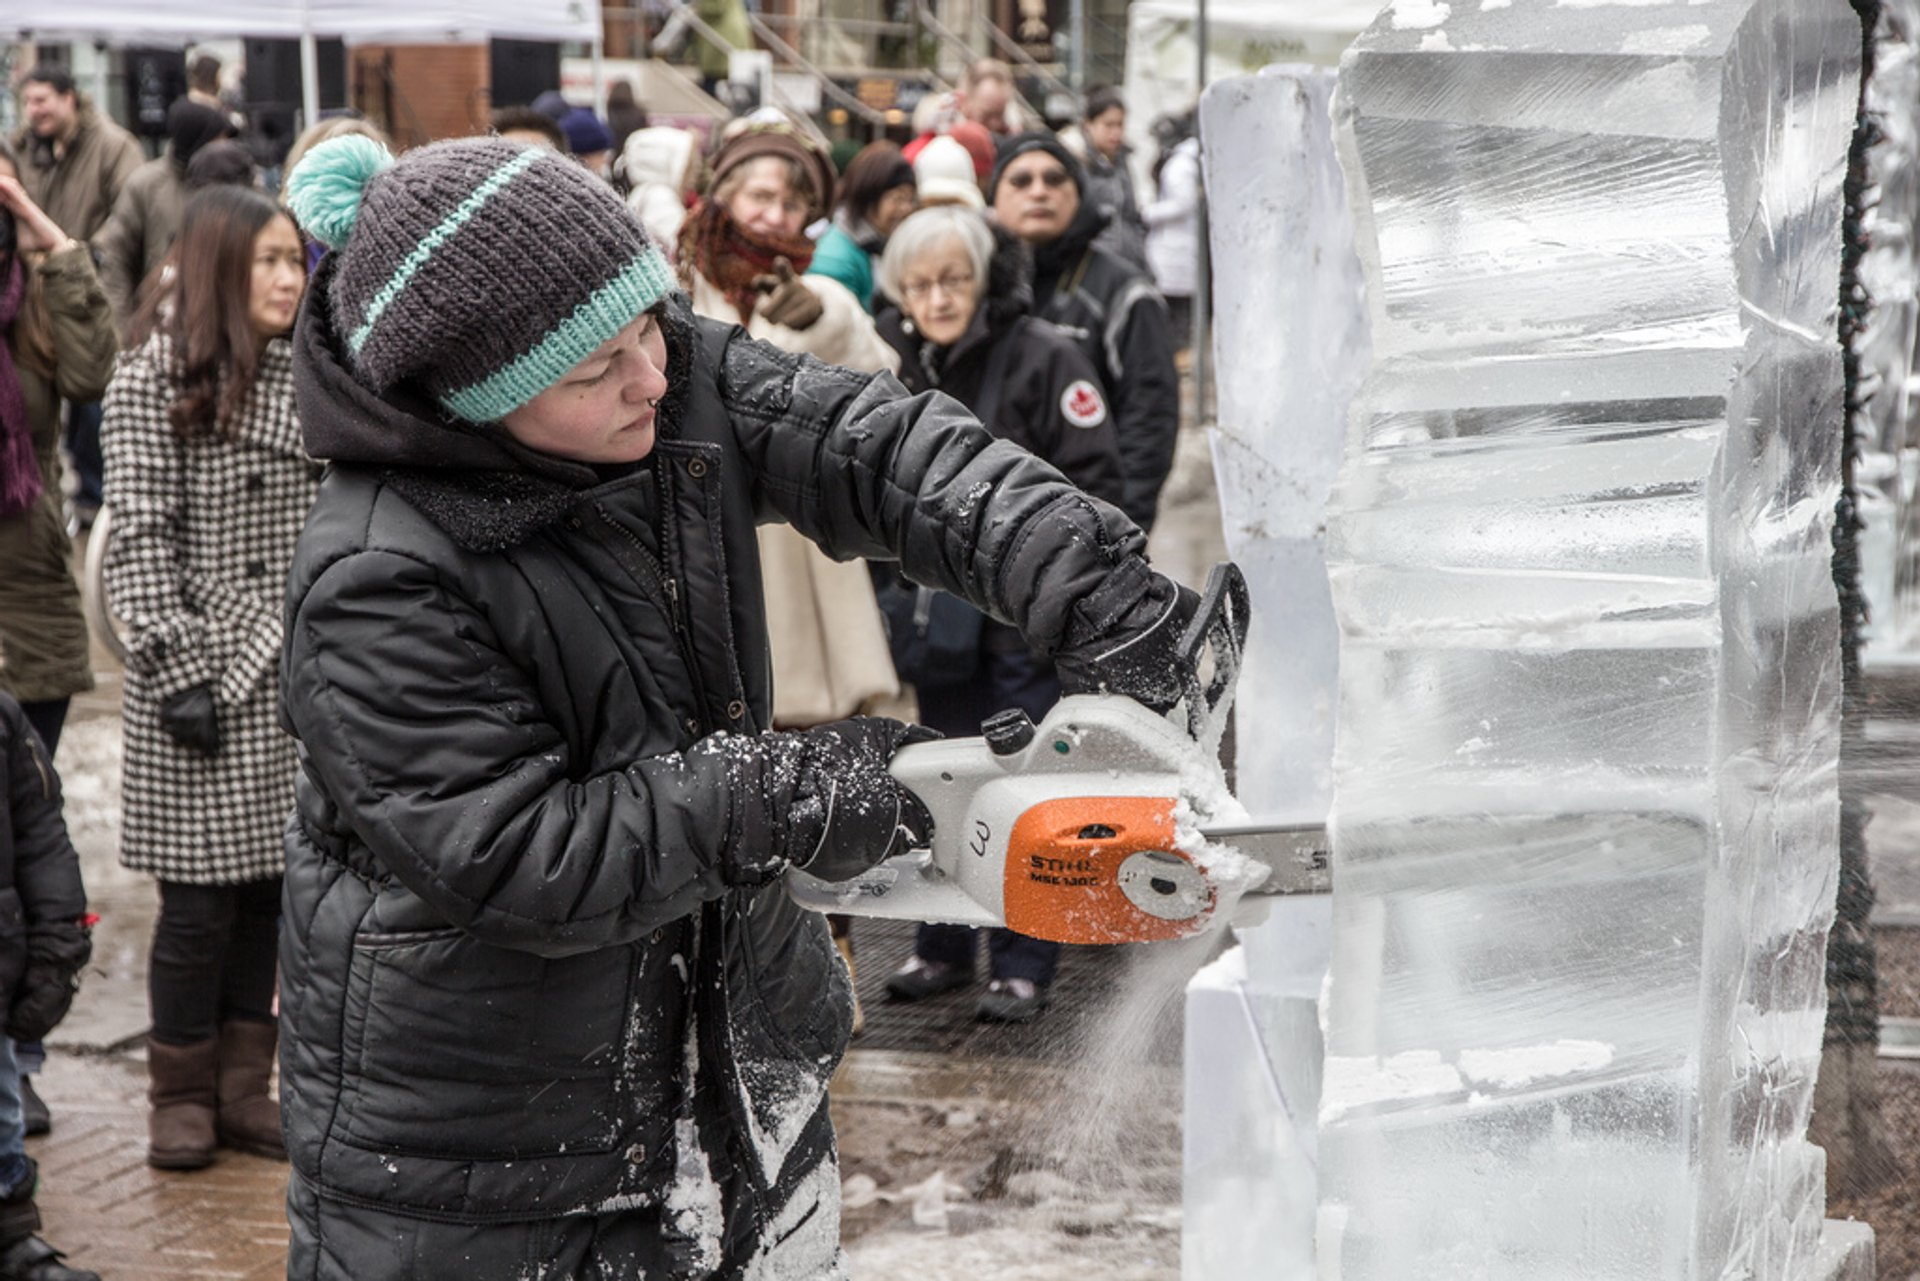 Best time to see Bloor-Yorkville Icefest in Toronto